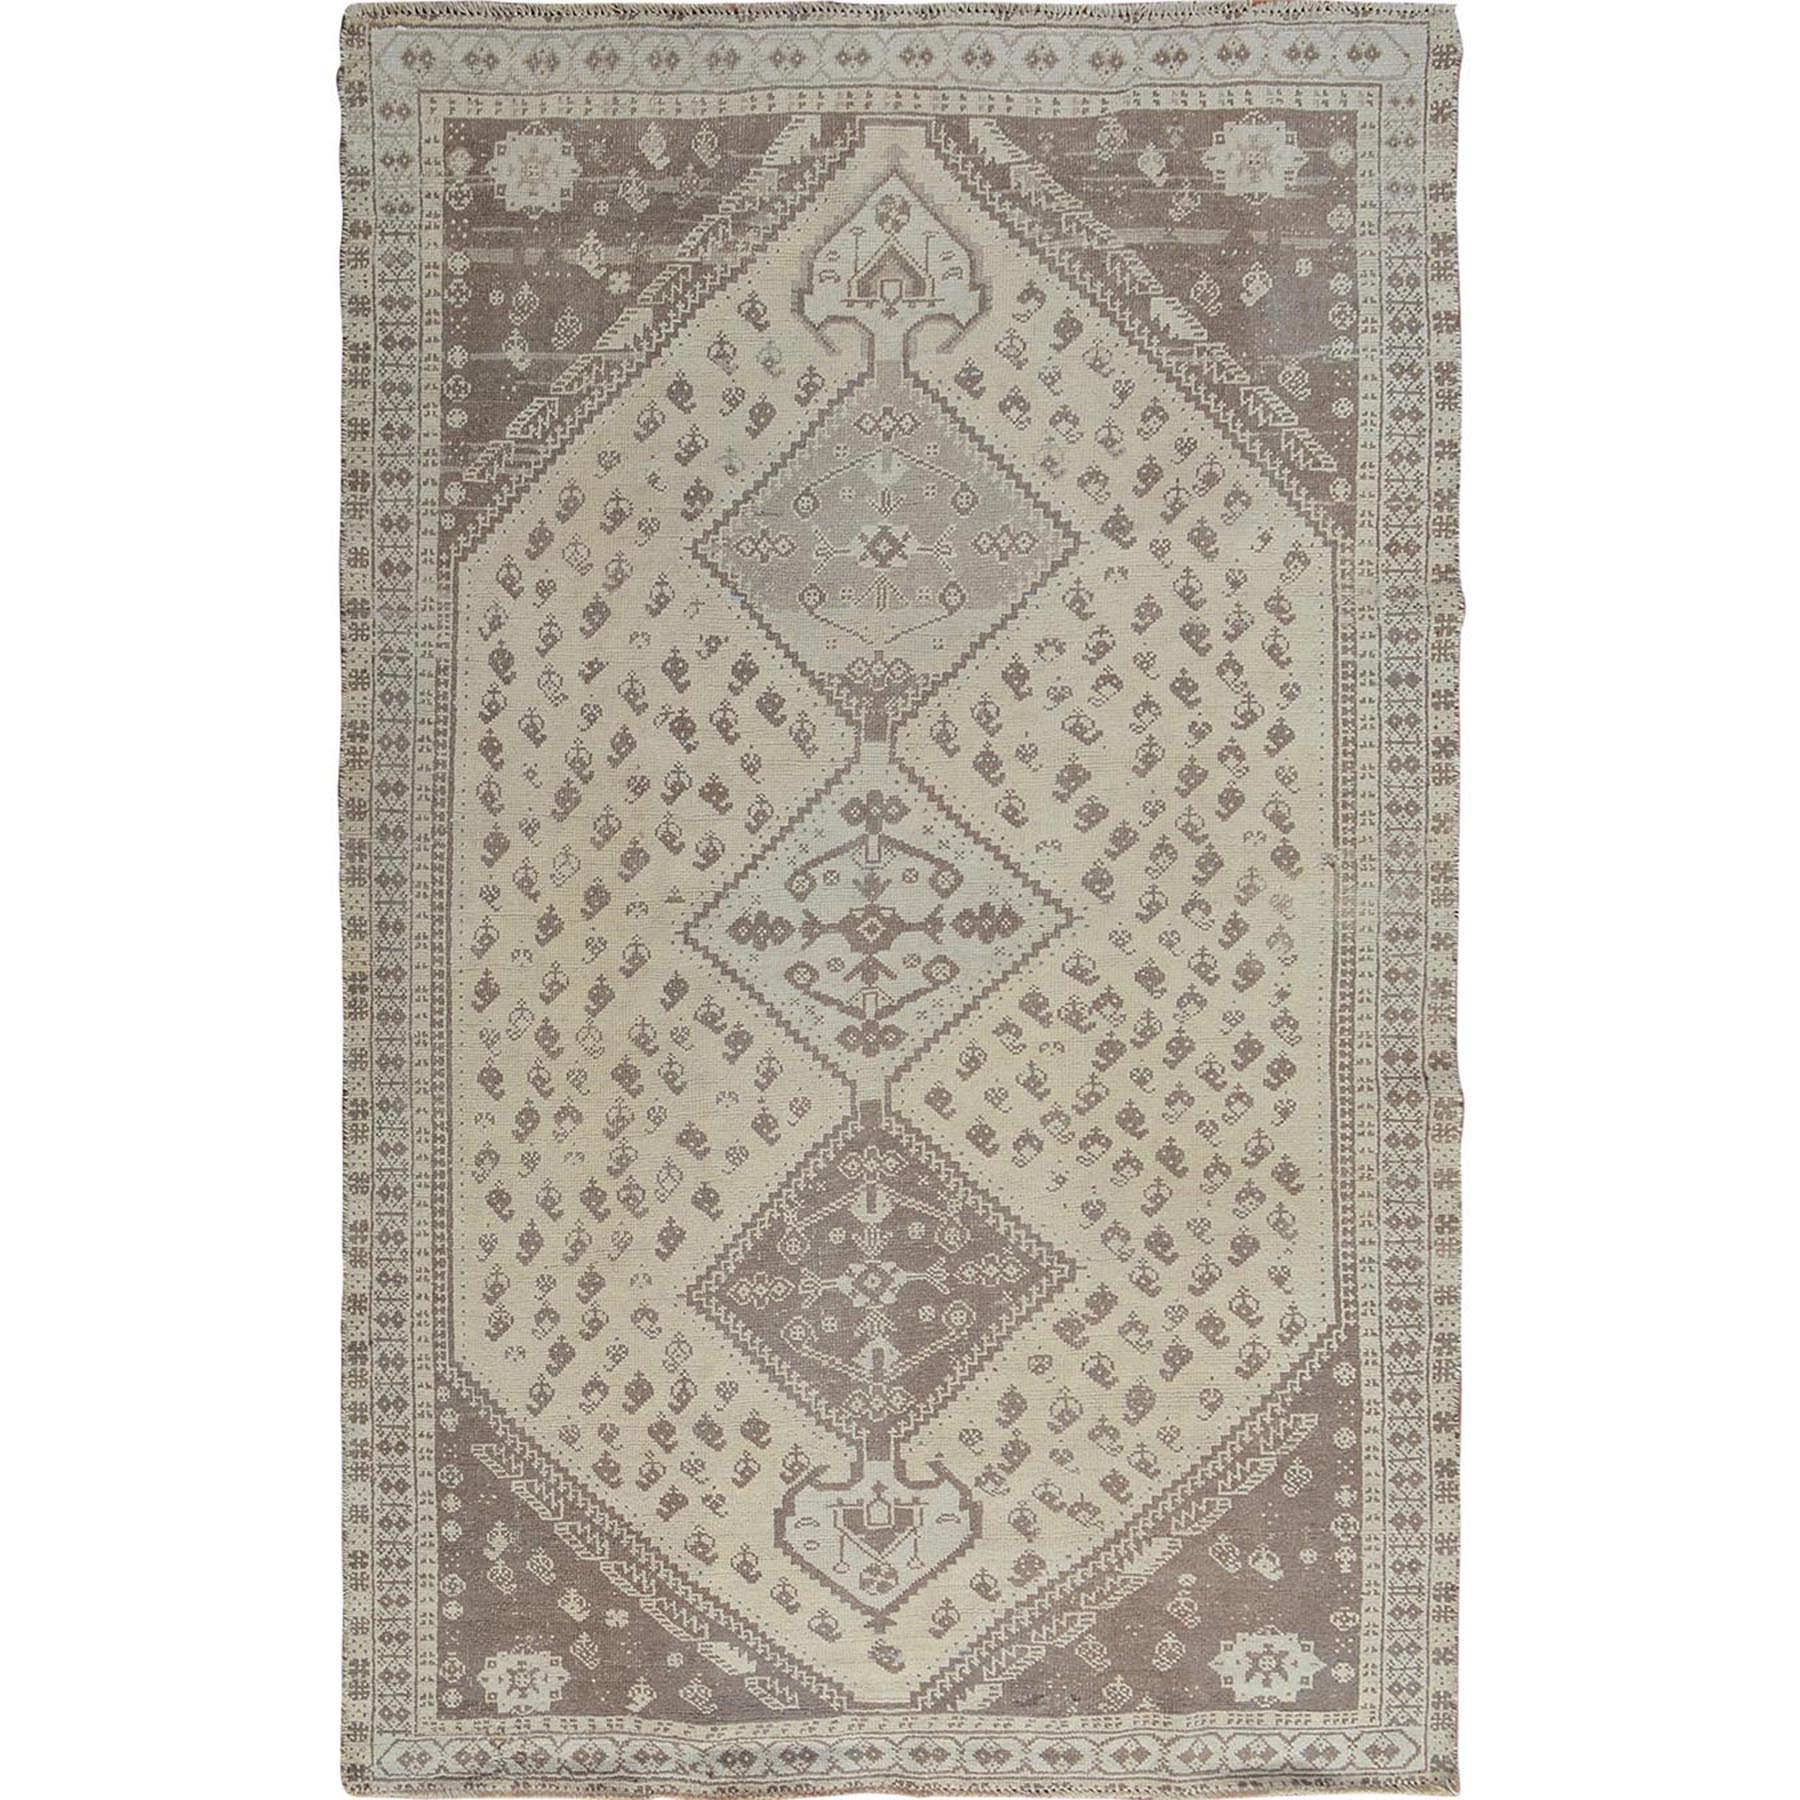 "5'X7'9"" Natural Colors Vintage And Worn Down Persian Shiraz Pure Wool Hand Knotted Oriental Rug moae7bc6"